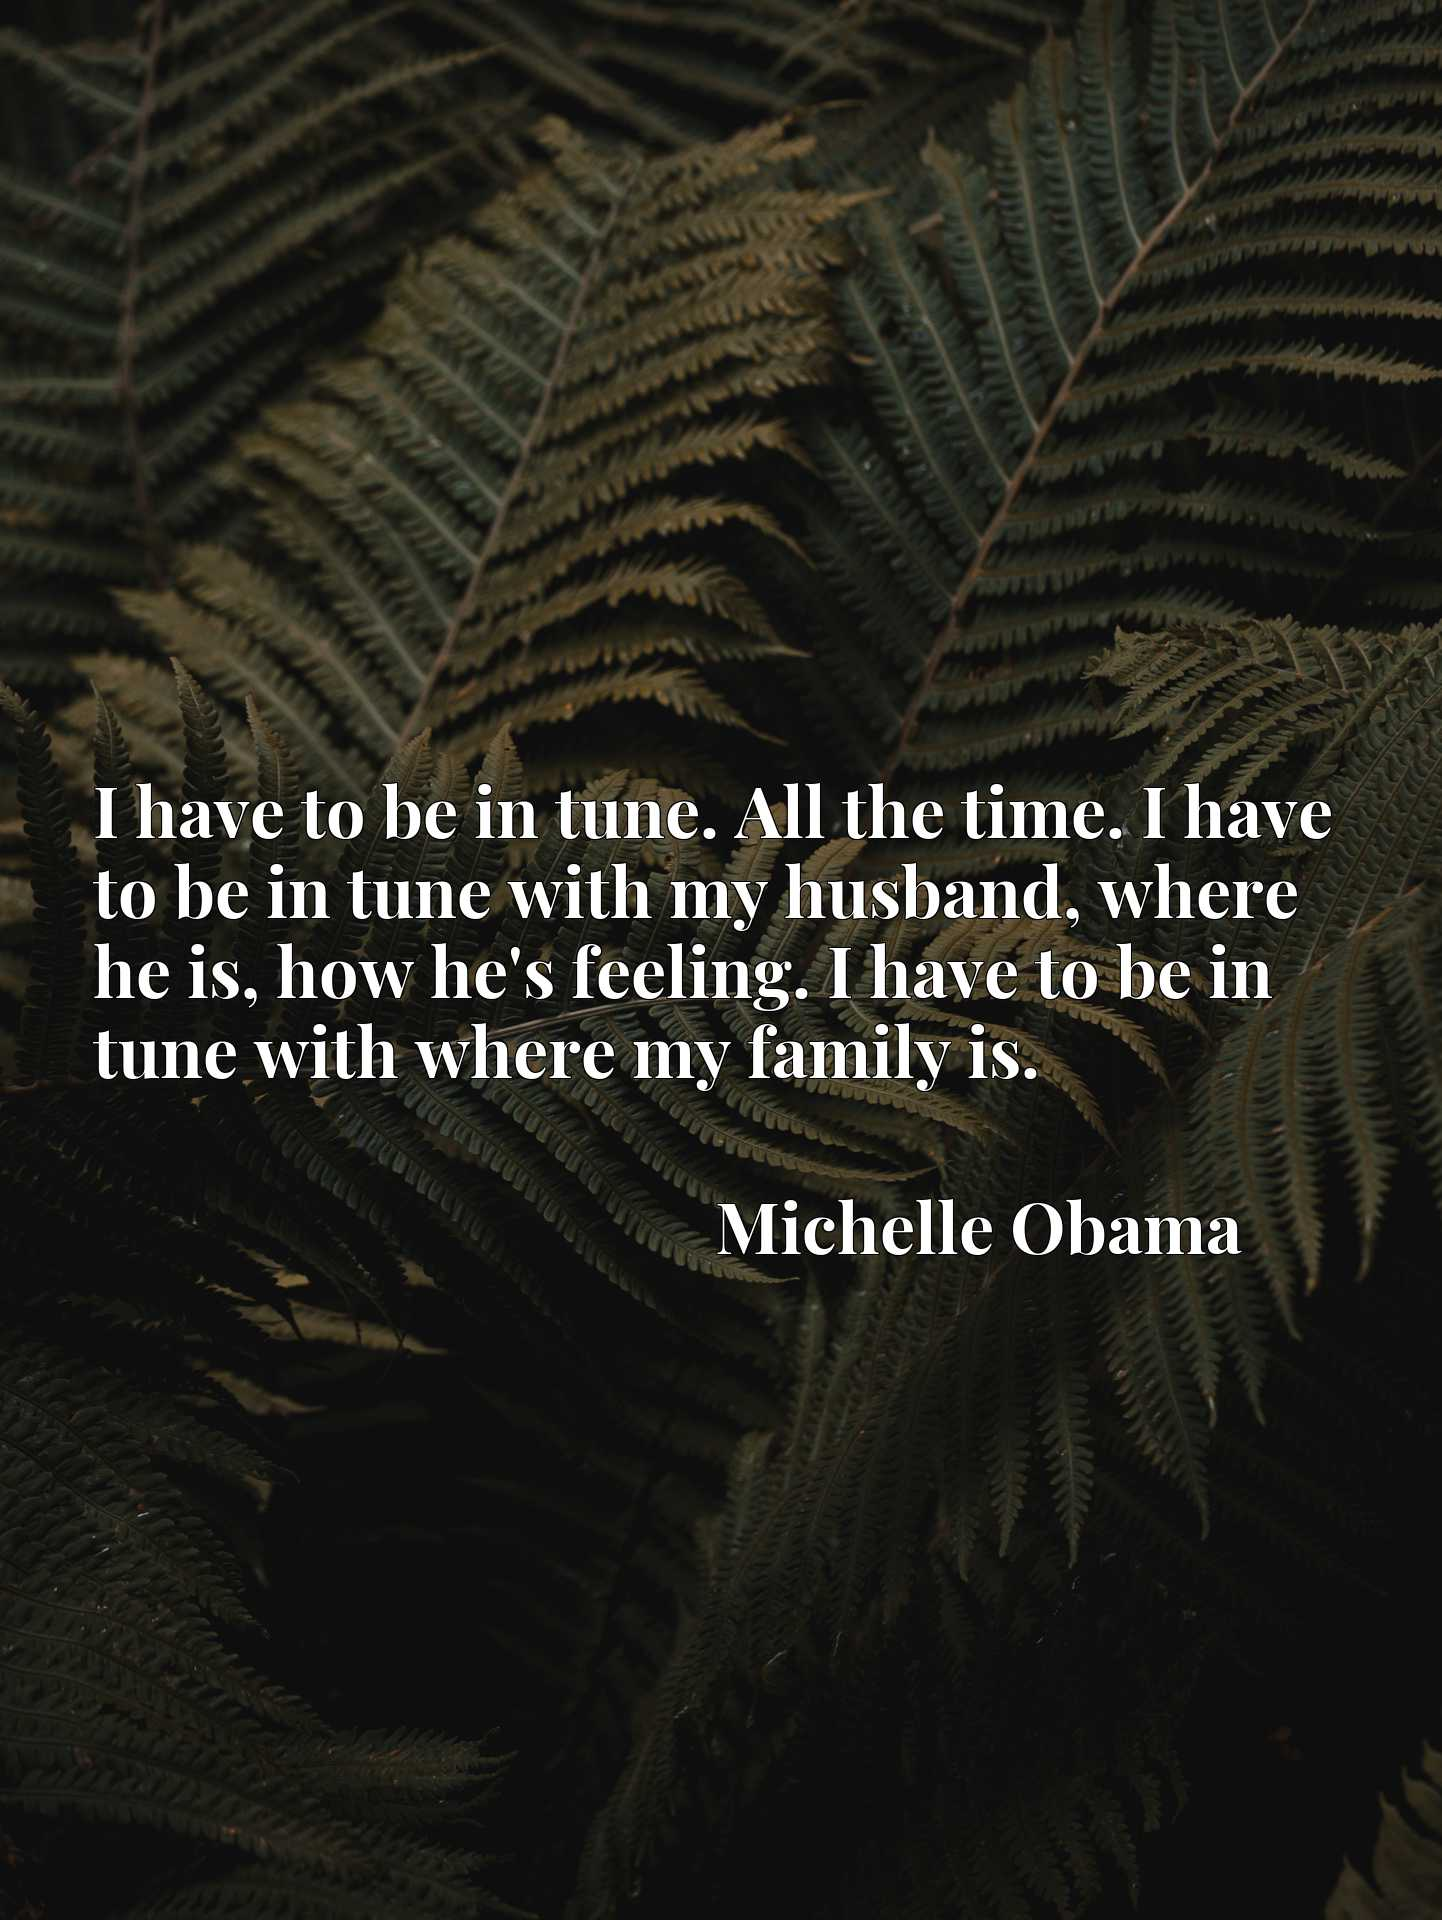 I have to be in tune. All the time. I have to be in tune with my husband, where he is, how he's feeling. I have to be in tune with where my family is.